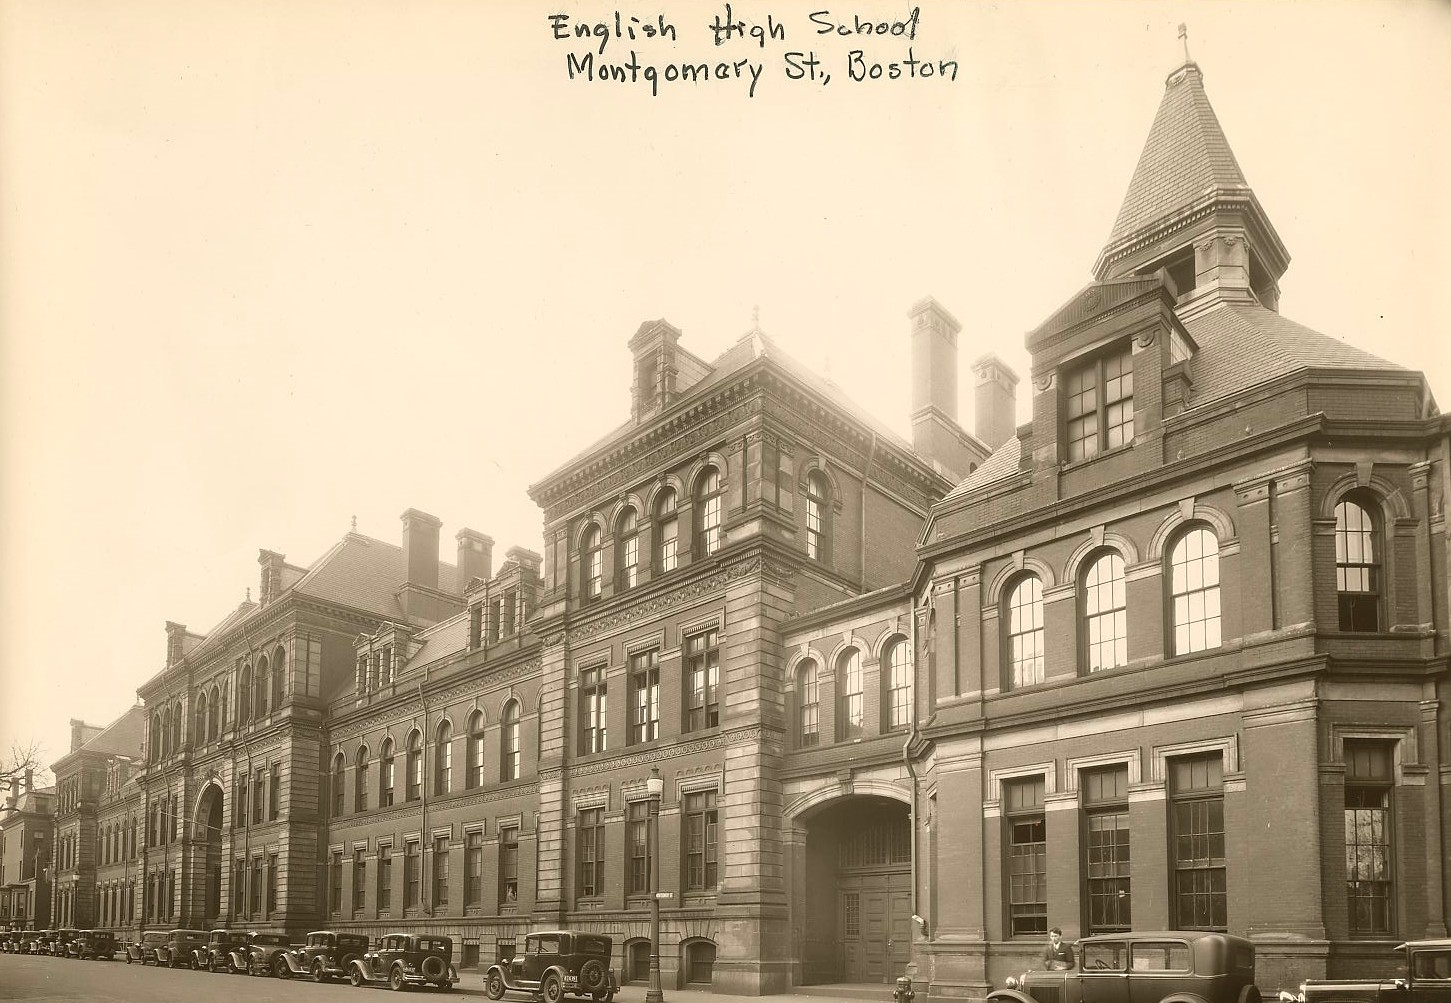 File:English High School   403002054   City Of Boston Archives